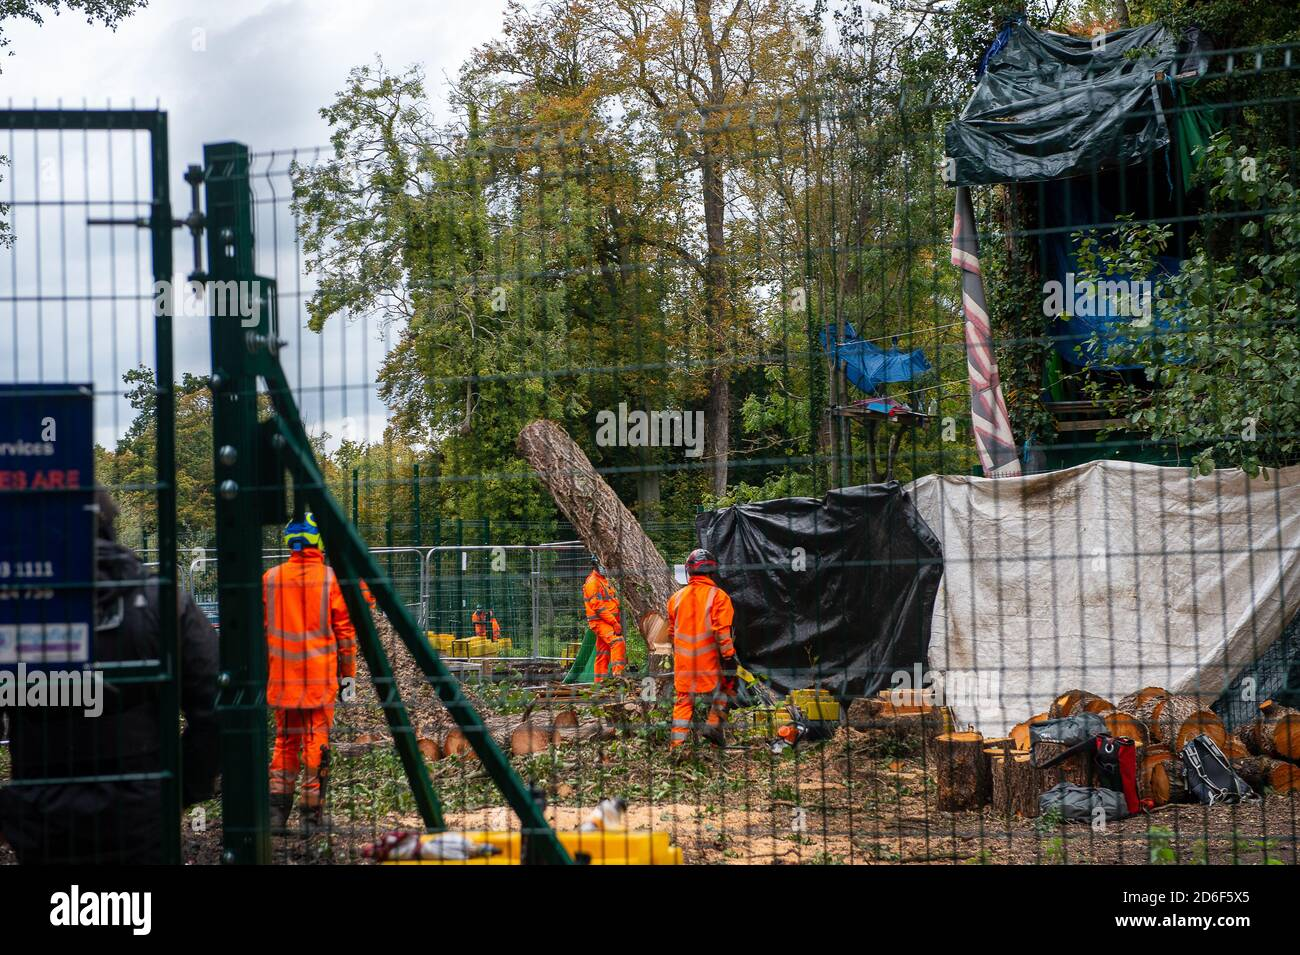 Denham, UK. 16th October 2020. HS2 were at work again today in the normally tranquil Denham Country Park, destroying mature trees. This is in readiness for a new temporary bridge that is being built to take their lorries and equipment across the River Colne. The trees being felled today by HS2 were right next to the Denham Ford Protection Camp where HS2 Rebellion anti HS2 environmental campaigners are living in the woods. A mature tree felled by HS2 this morning crashed through HS2 high security fences onto a footpath near to where a protester was filming Stock Photo